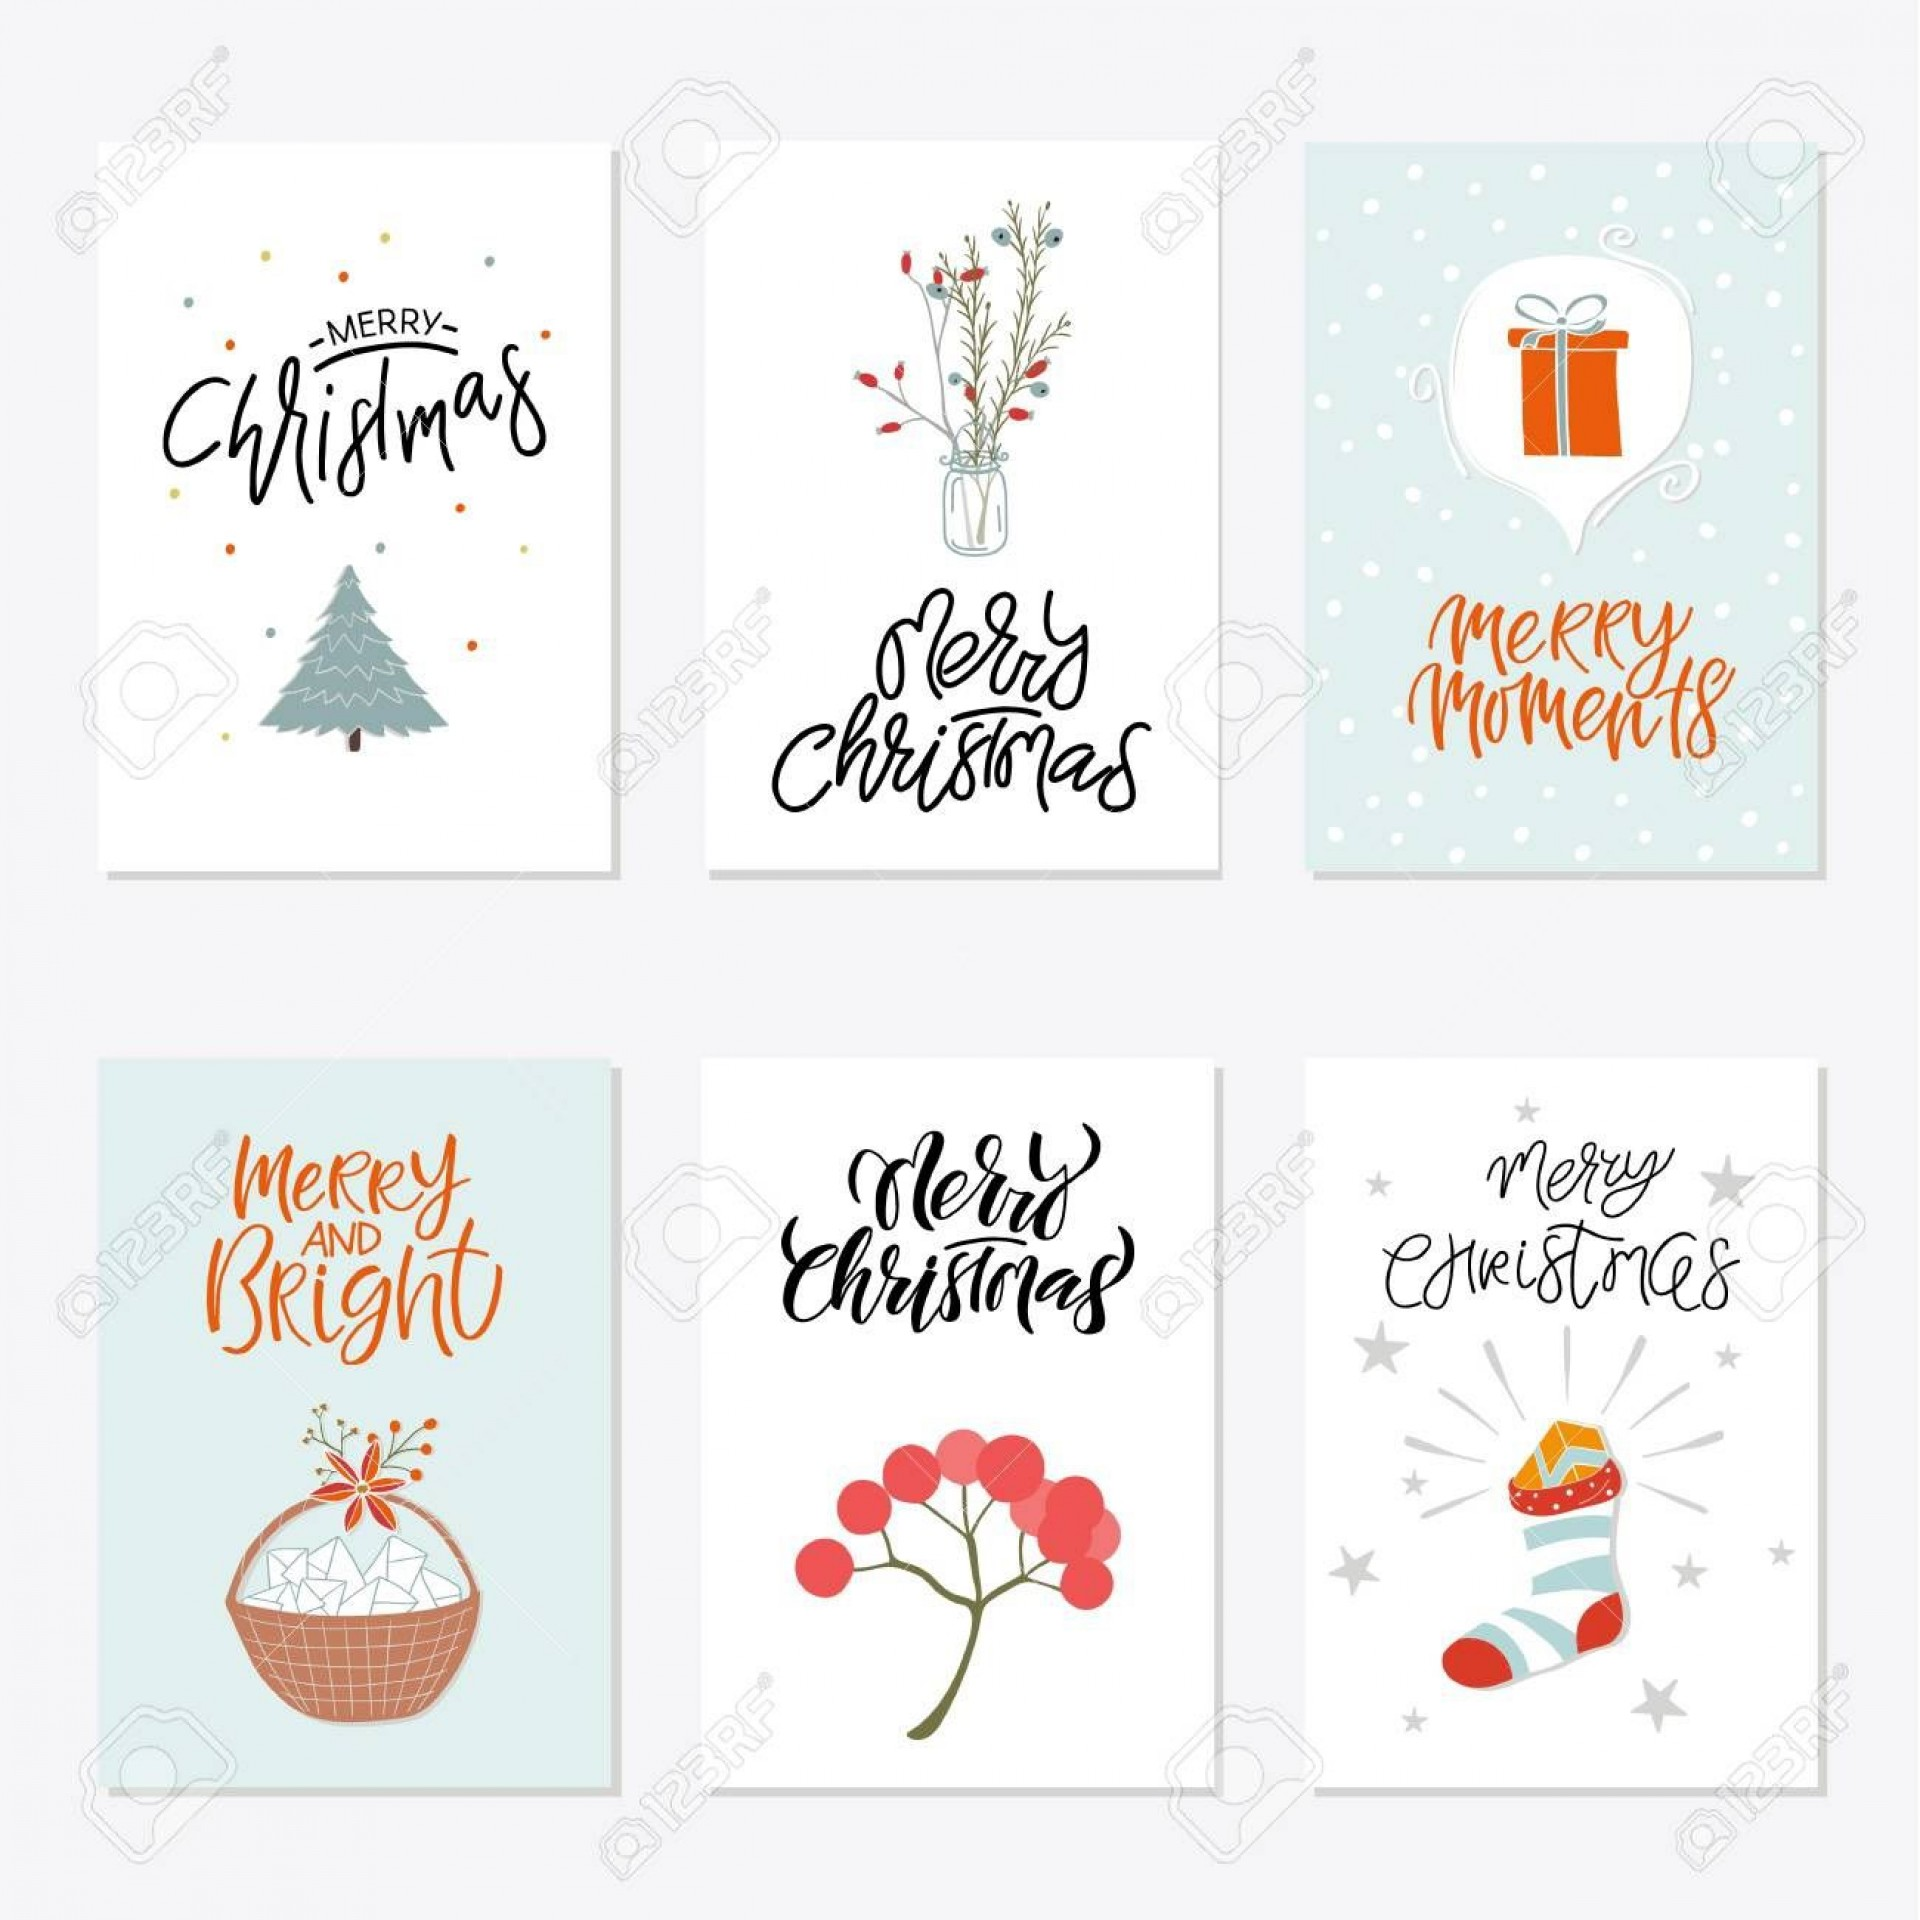 002 Unforgettable Printable Gift Card Template Photo  Free Envelope Christma Holder1920